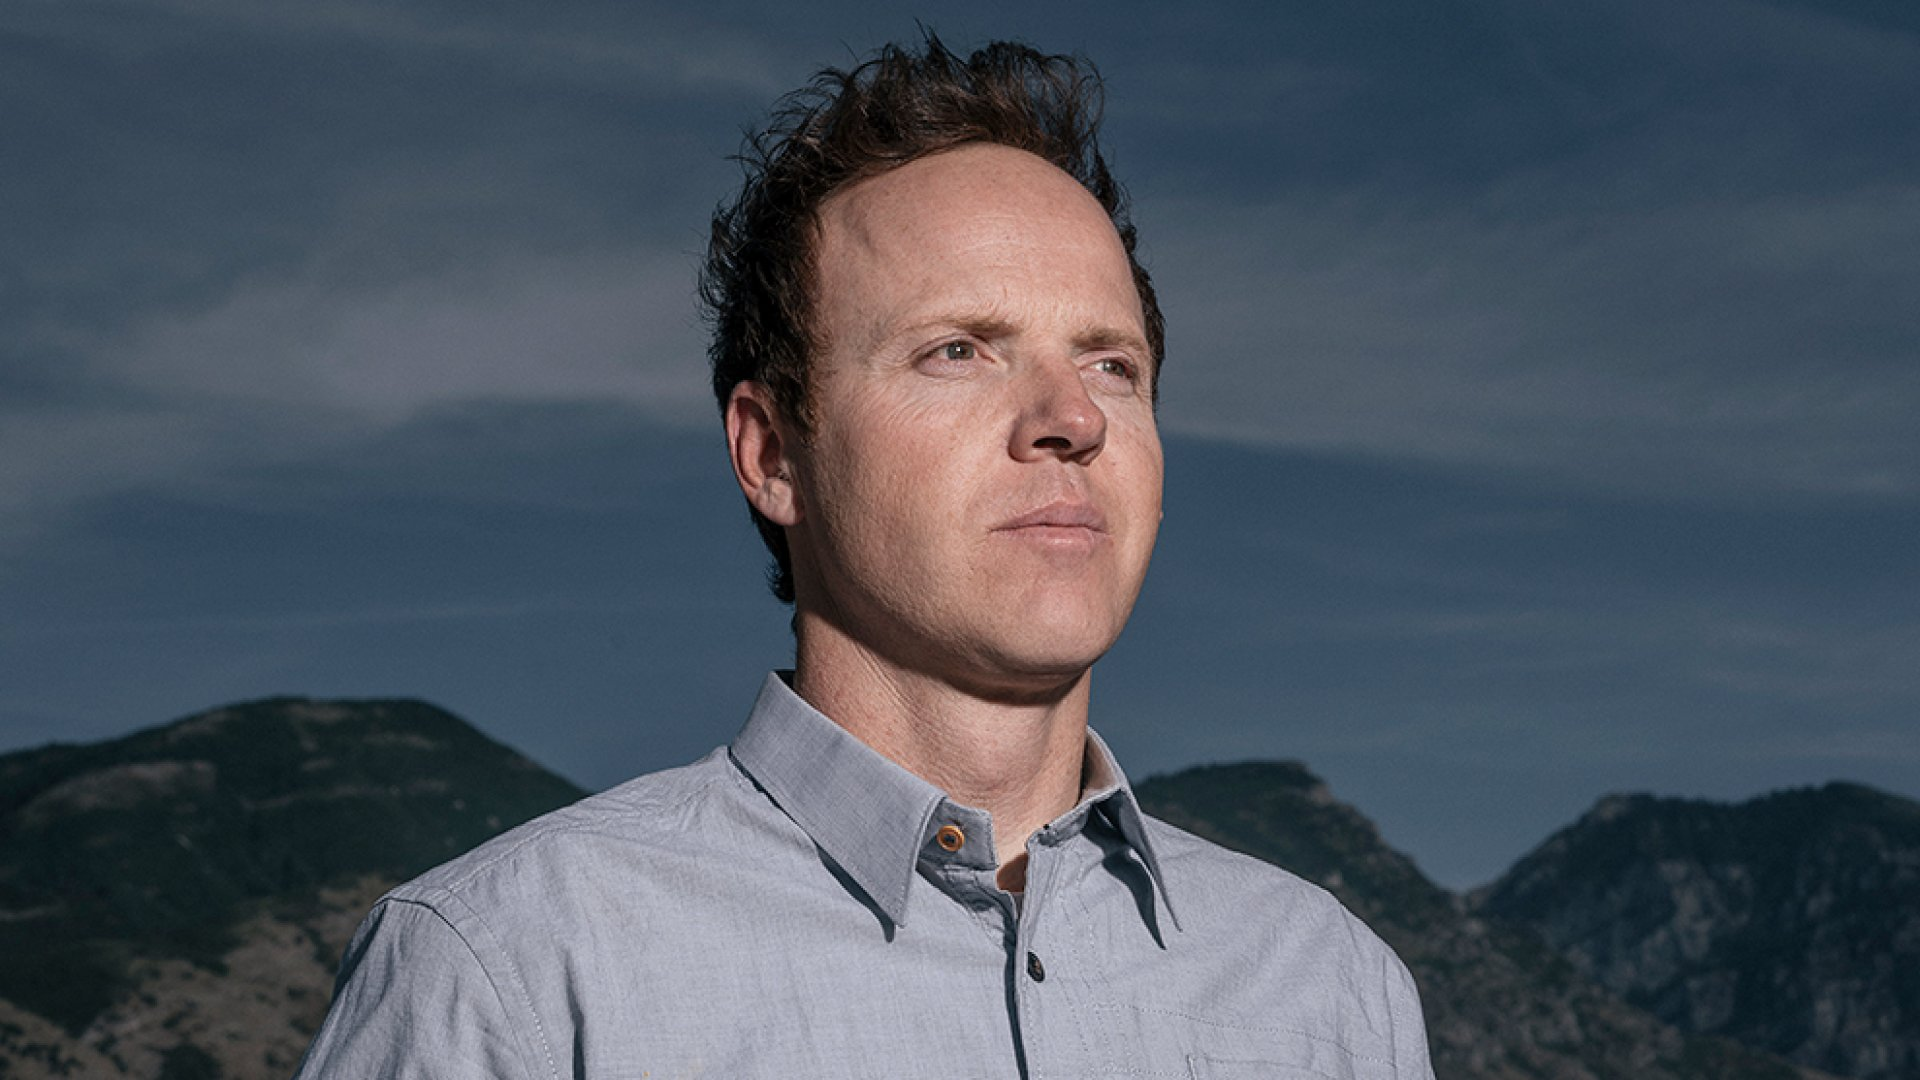 Smith started Provo, Utah-based Qualtrics in his parent's basement in 2002. He sold it to SAP for $8 billion in cash in January 2019.